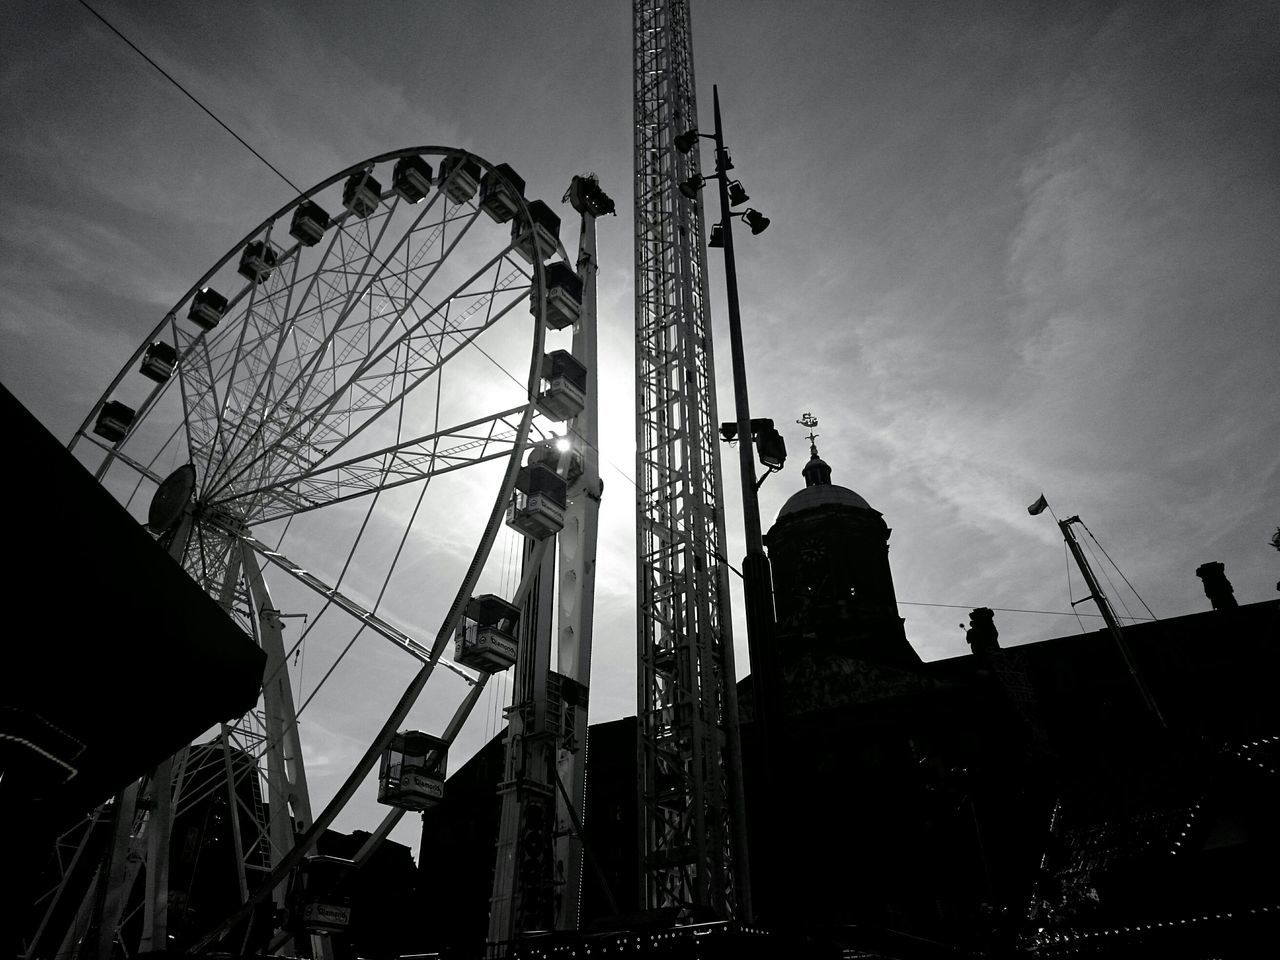 Check me out on Instagram @ Martinezfrost3 © Michael Christian Martinez Travel Photography Travel EyeEm Best Shots EyeEm Best Shots - Black + White Black And White Europe Sony Z3 Sony Xperia Z3 The Changing City Tour Ferrys Wheel Theme Park Mobilephotography My Best Photo 2015